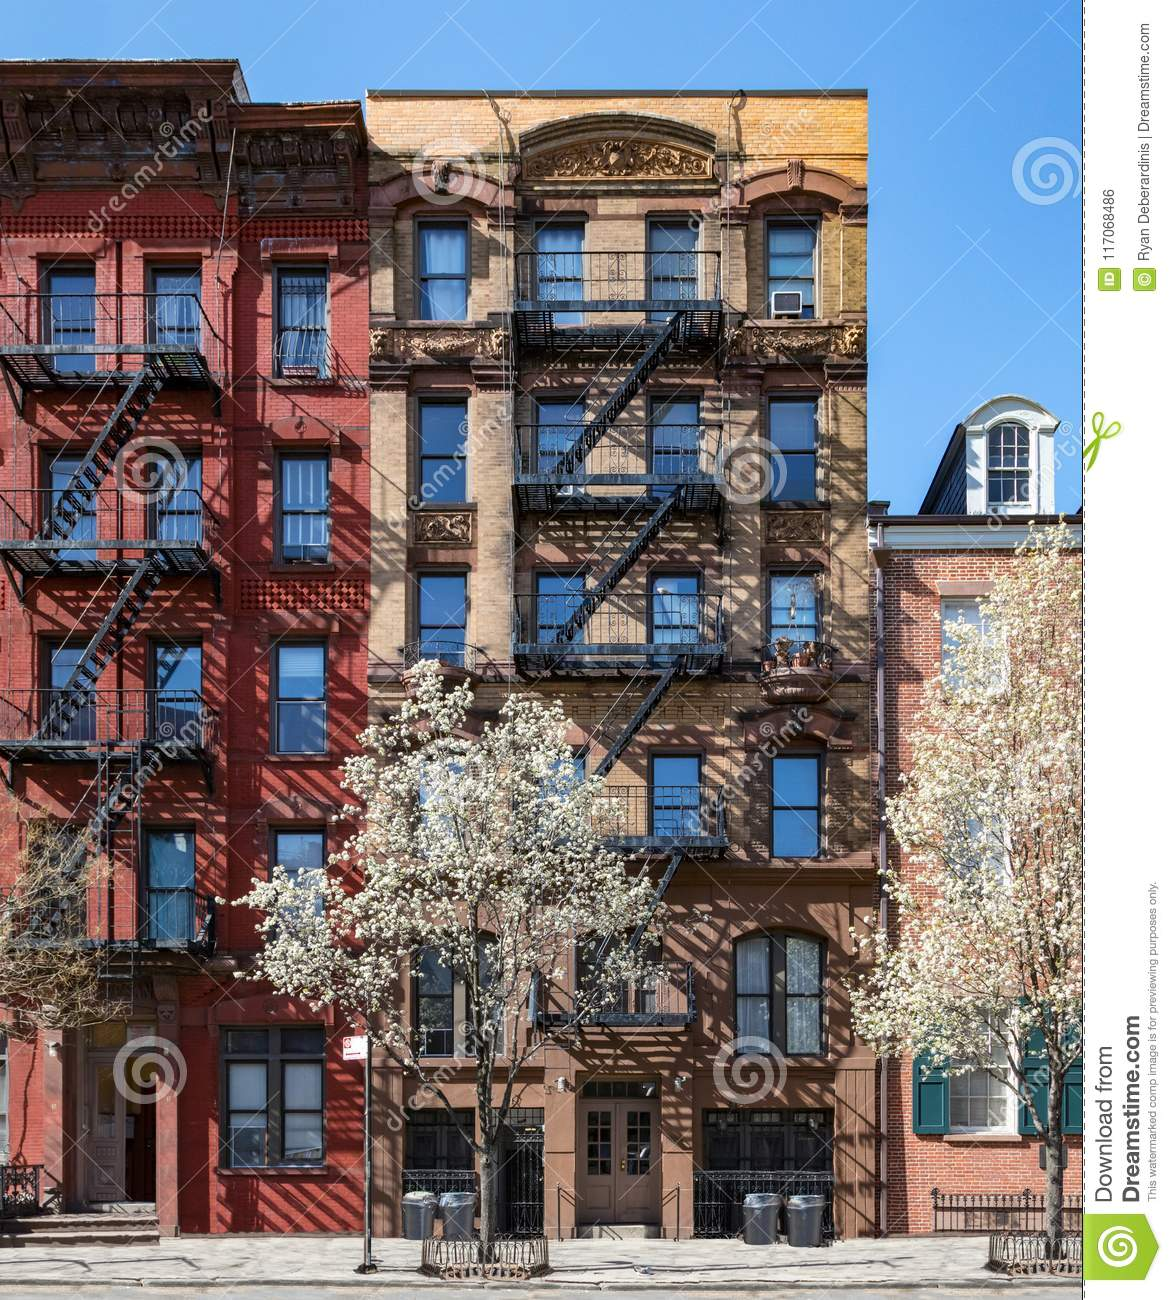 New York City in Spring - Historic buildings in the East Village